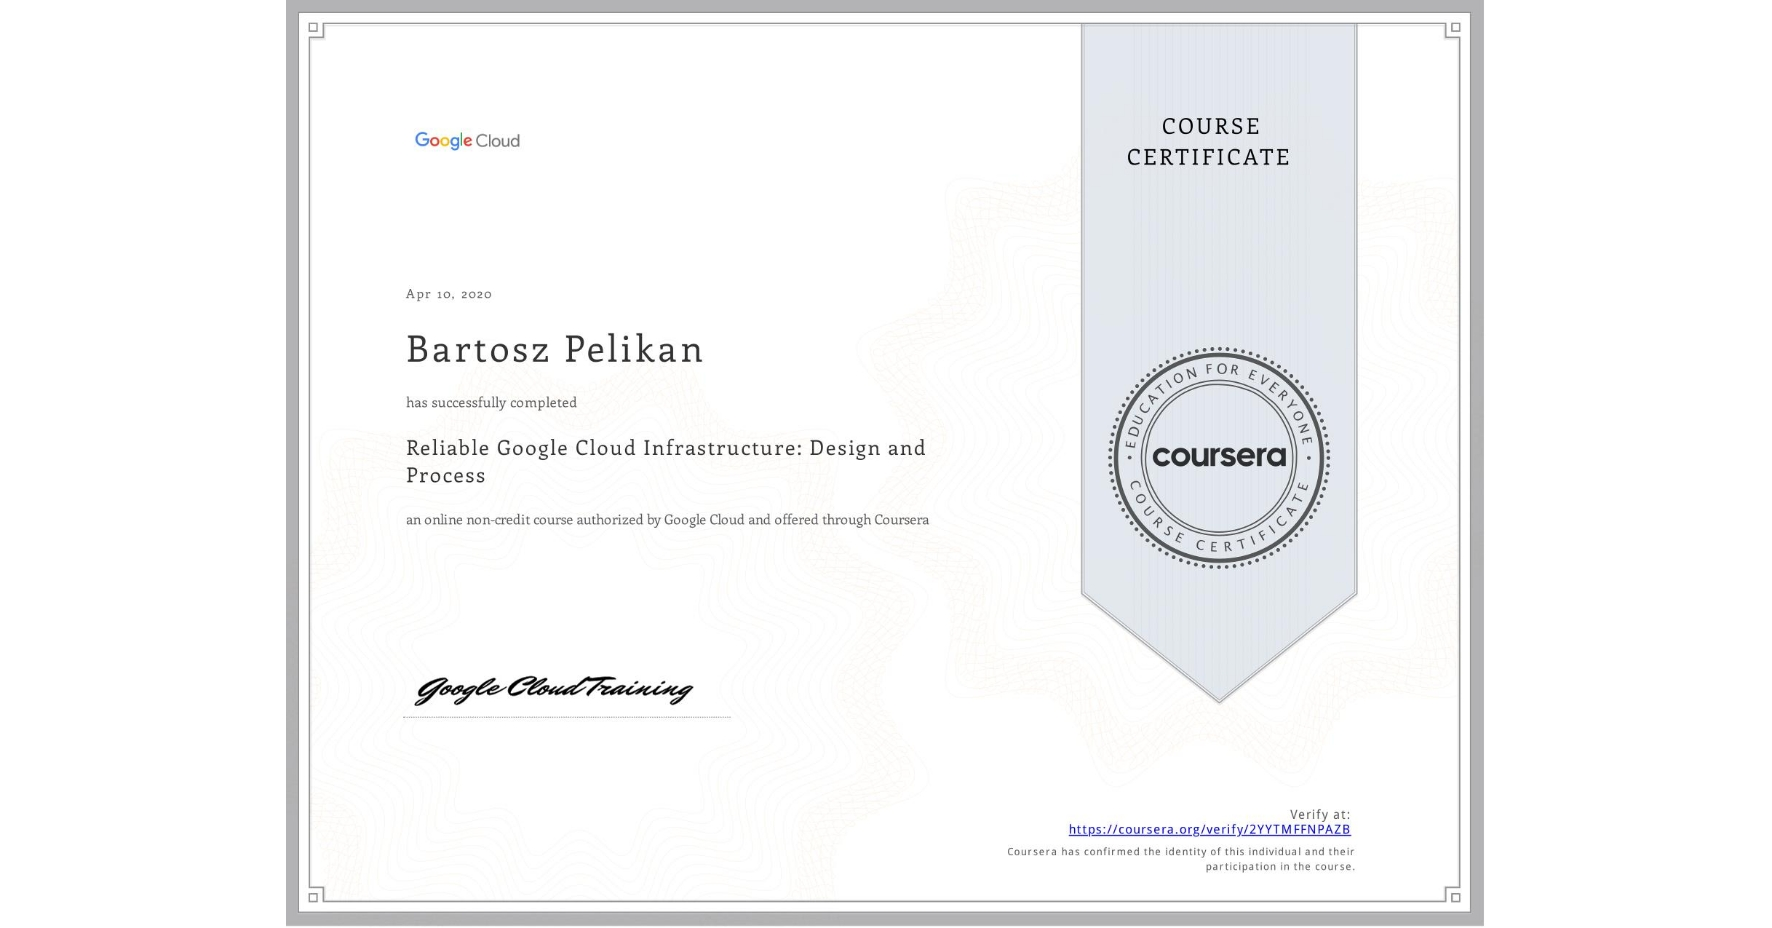 View certificate for Bartosz Pelikan, Reliable Google Cloud Infrastructure: Design and Process, an online non-credit course authorized by Google Cloud and offered through Coursera